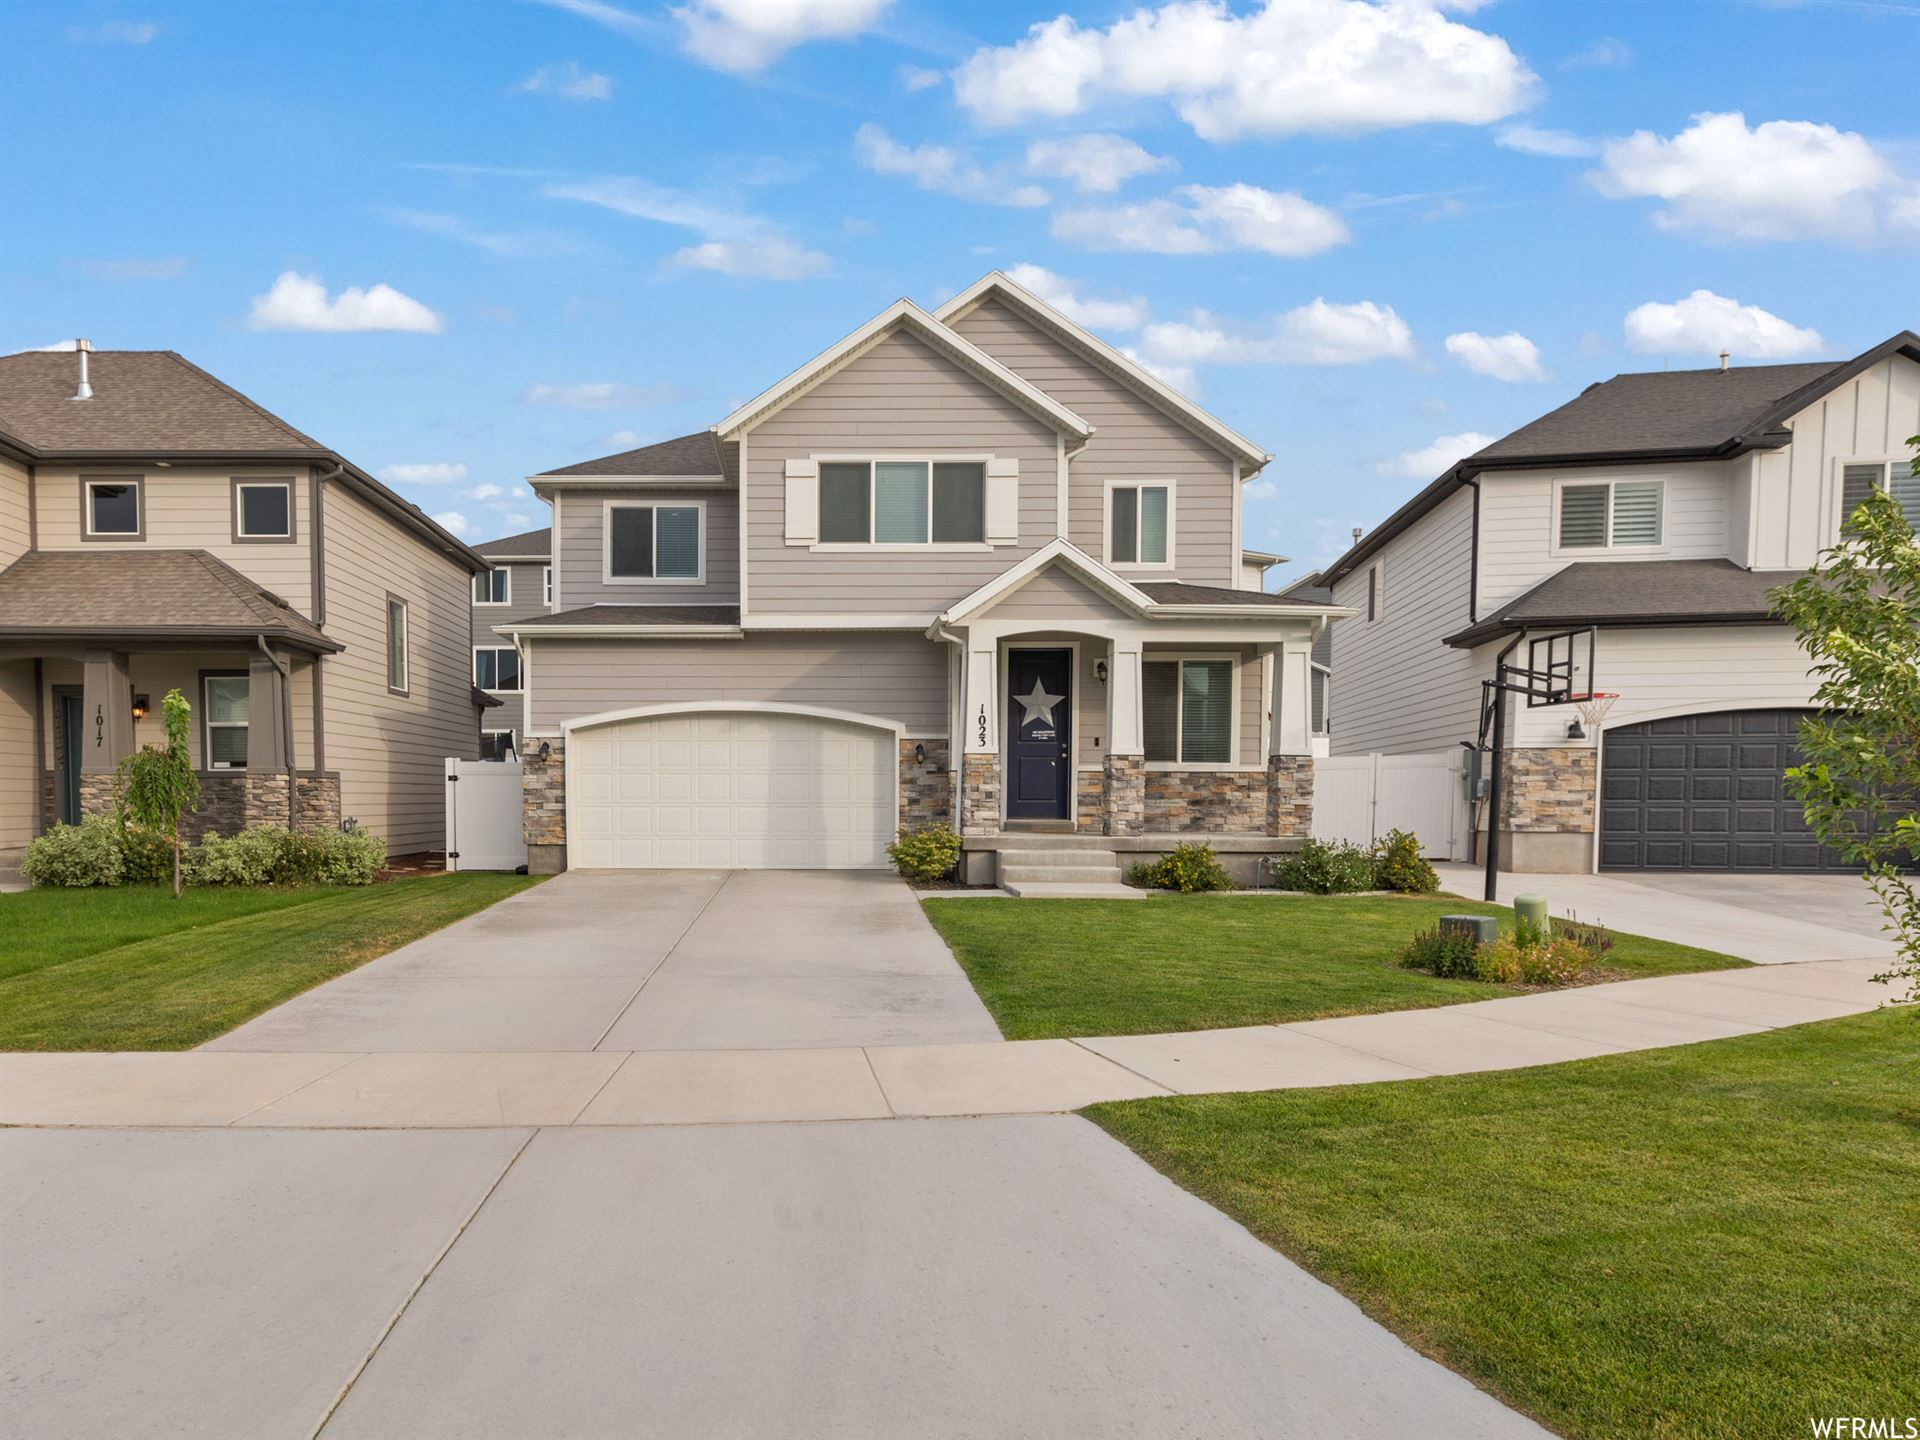 Photo of 1023 W MOLLY PITCHER CIR, Bluffdale, UT 84065 (MLS # 1756308)